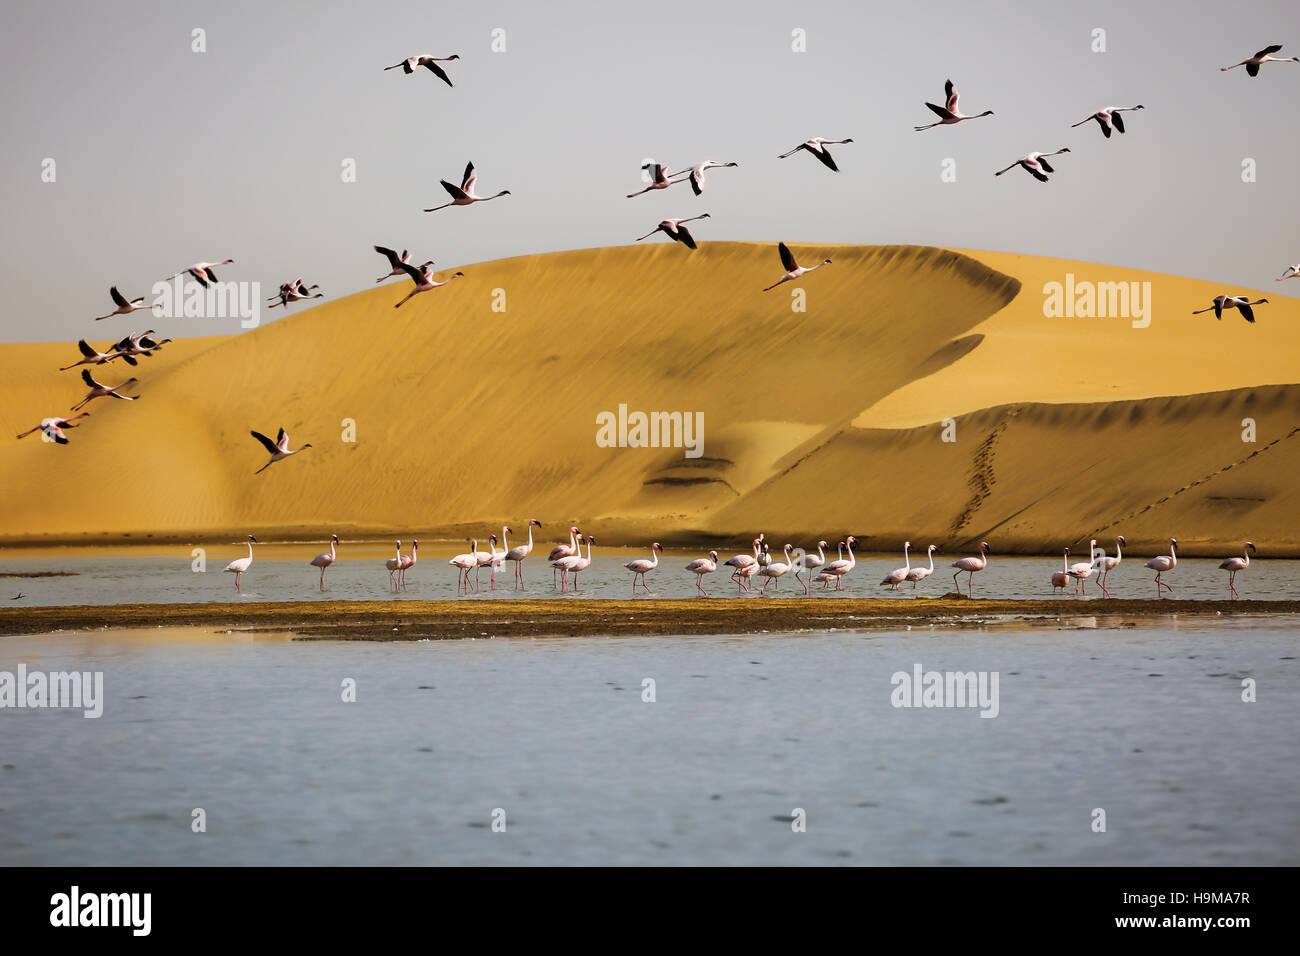 Flamingos with sand dunes on backgound in Walvis Bay, Namibia - Stock Image